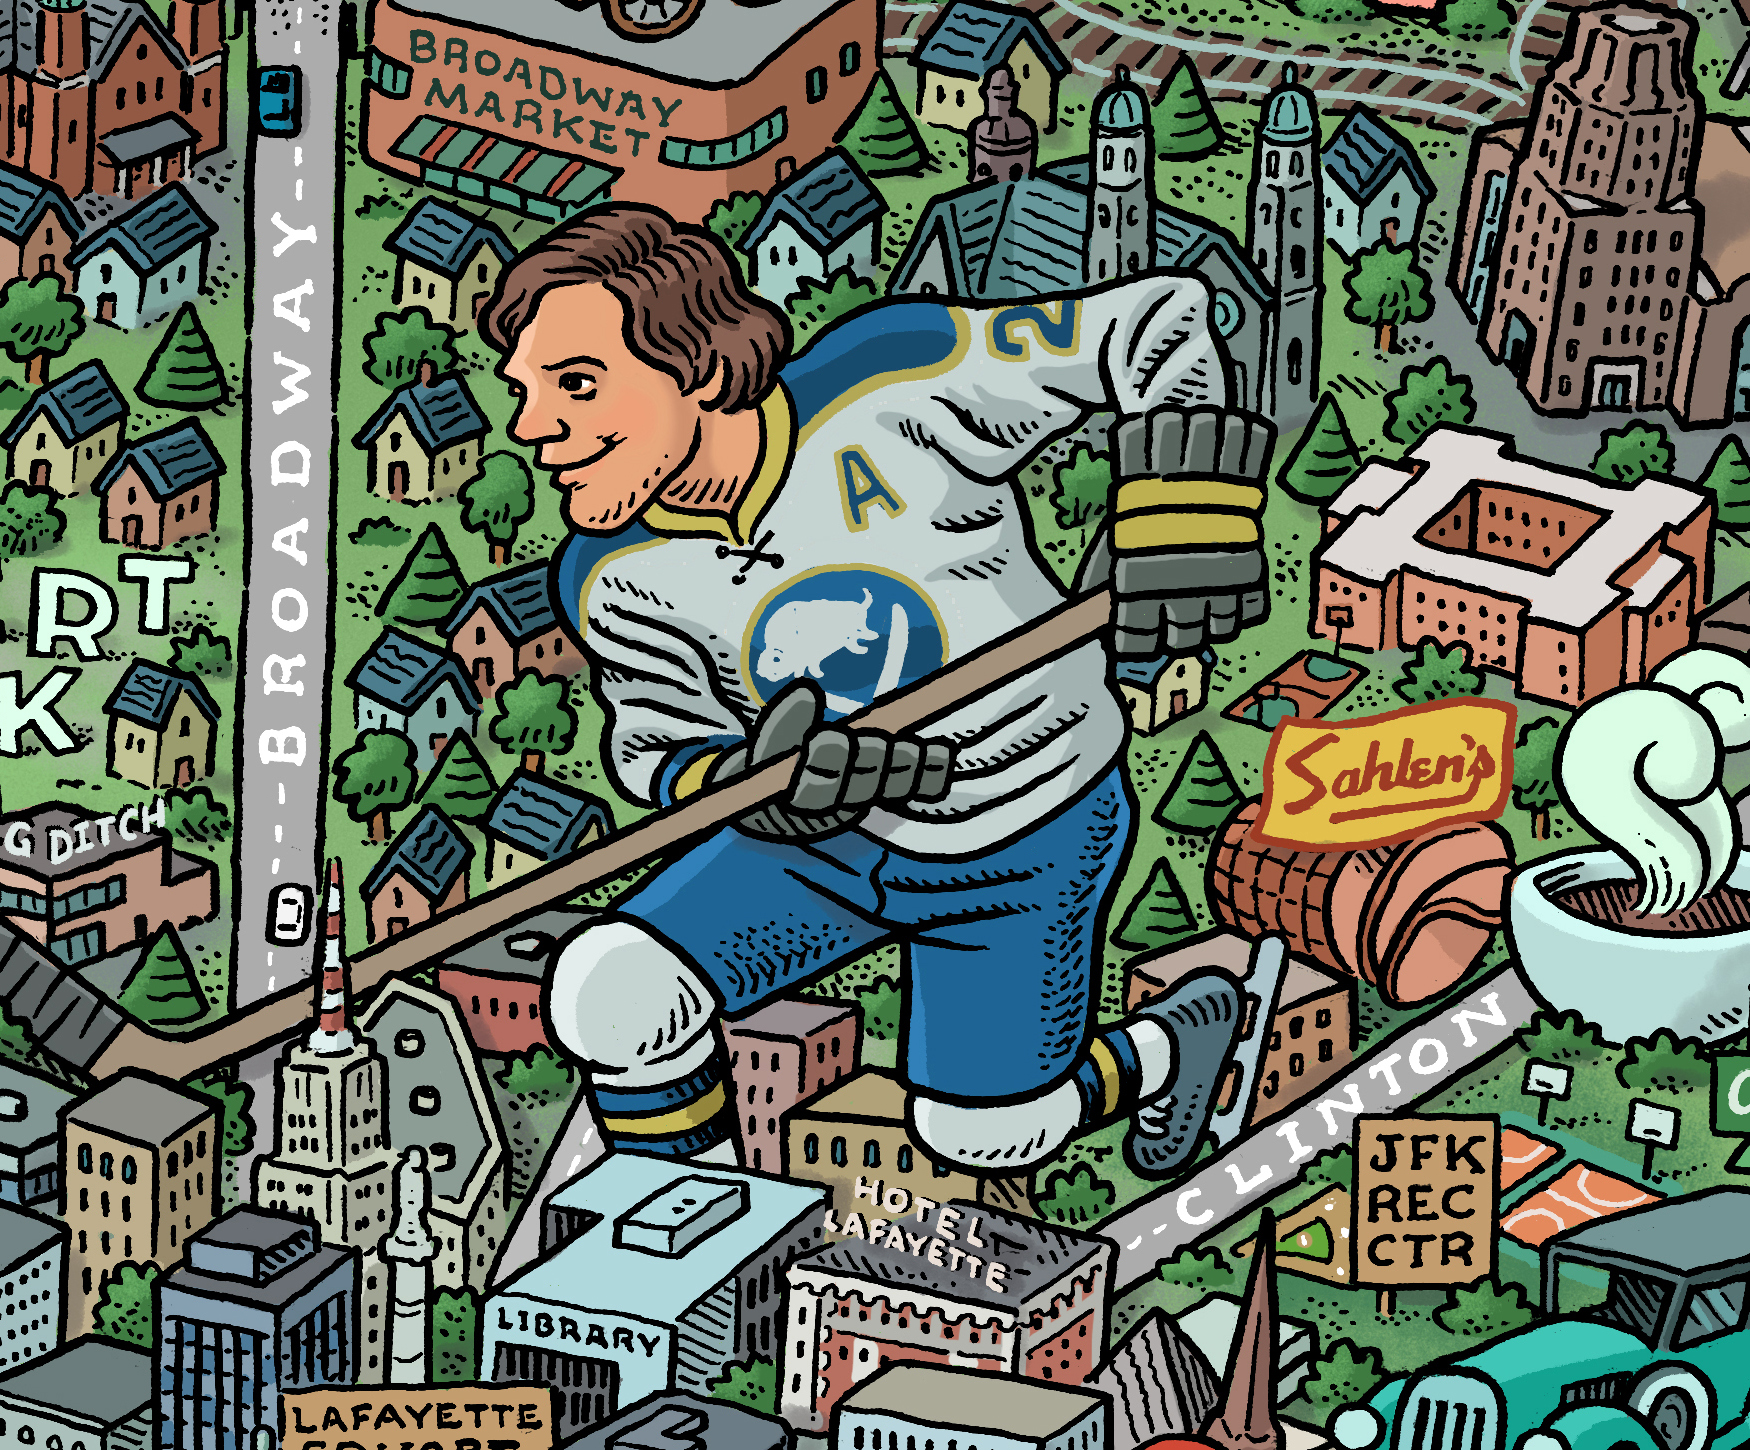 A detail of illustrator Mario Zucca's map of Buffalo features the figure of a Buffalo Sabre Tim Horton towering over downtown Buffalo.